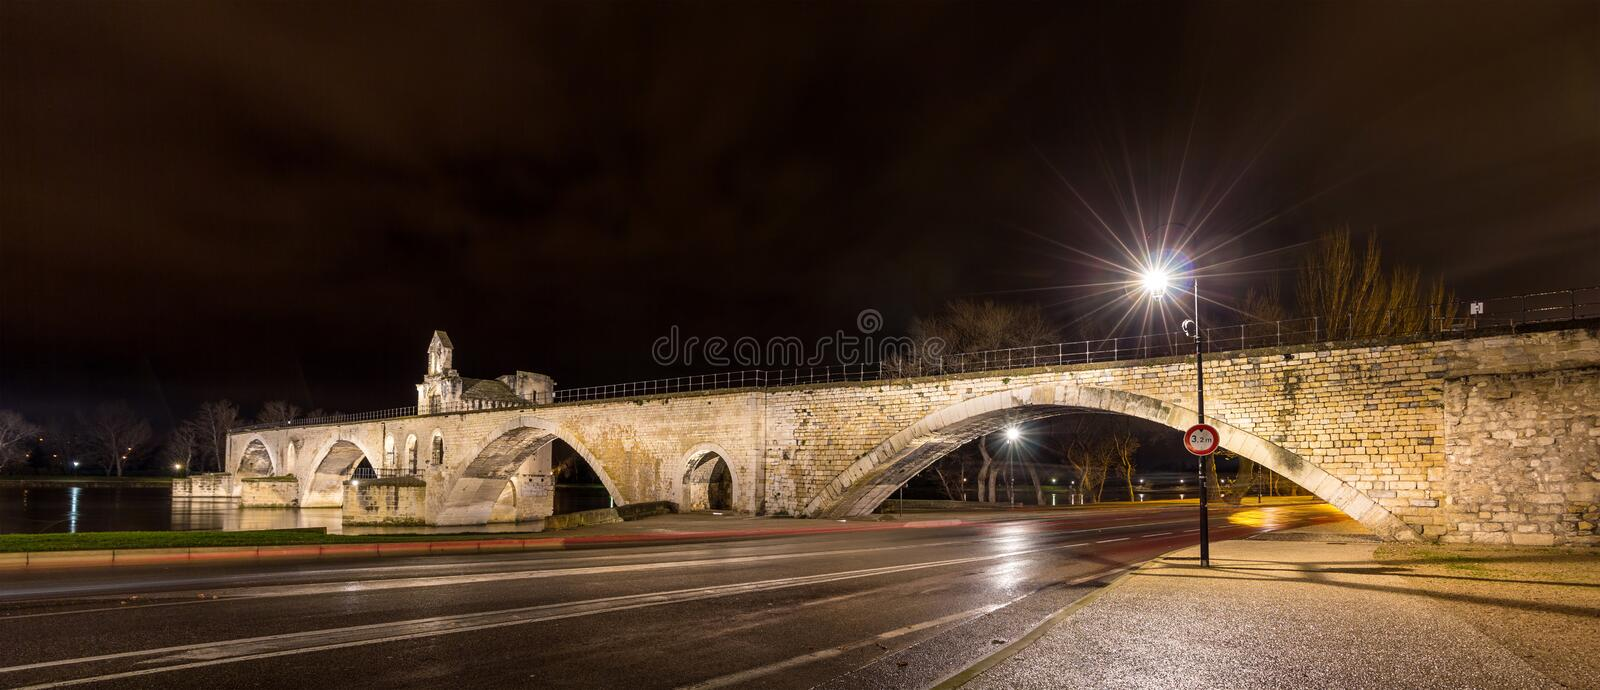 Pont Saint-Benezet in Avignon, a world heritage site in France royalty free stock photos